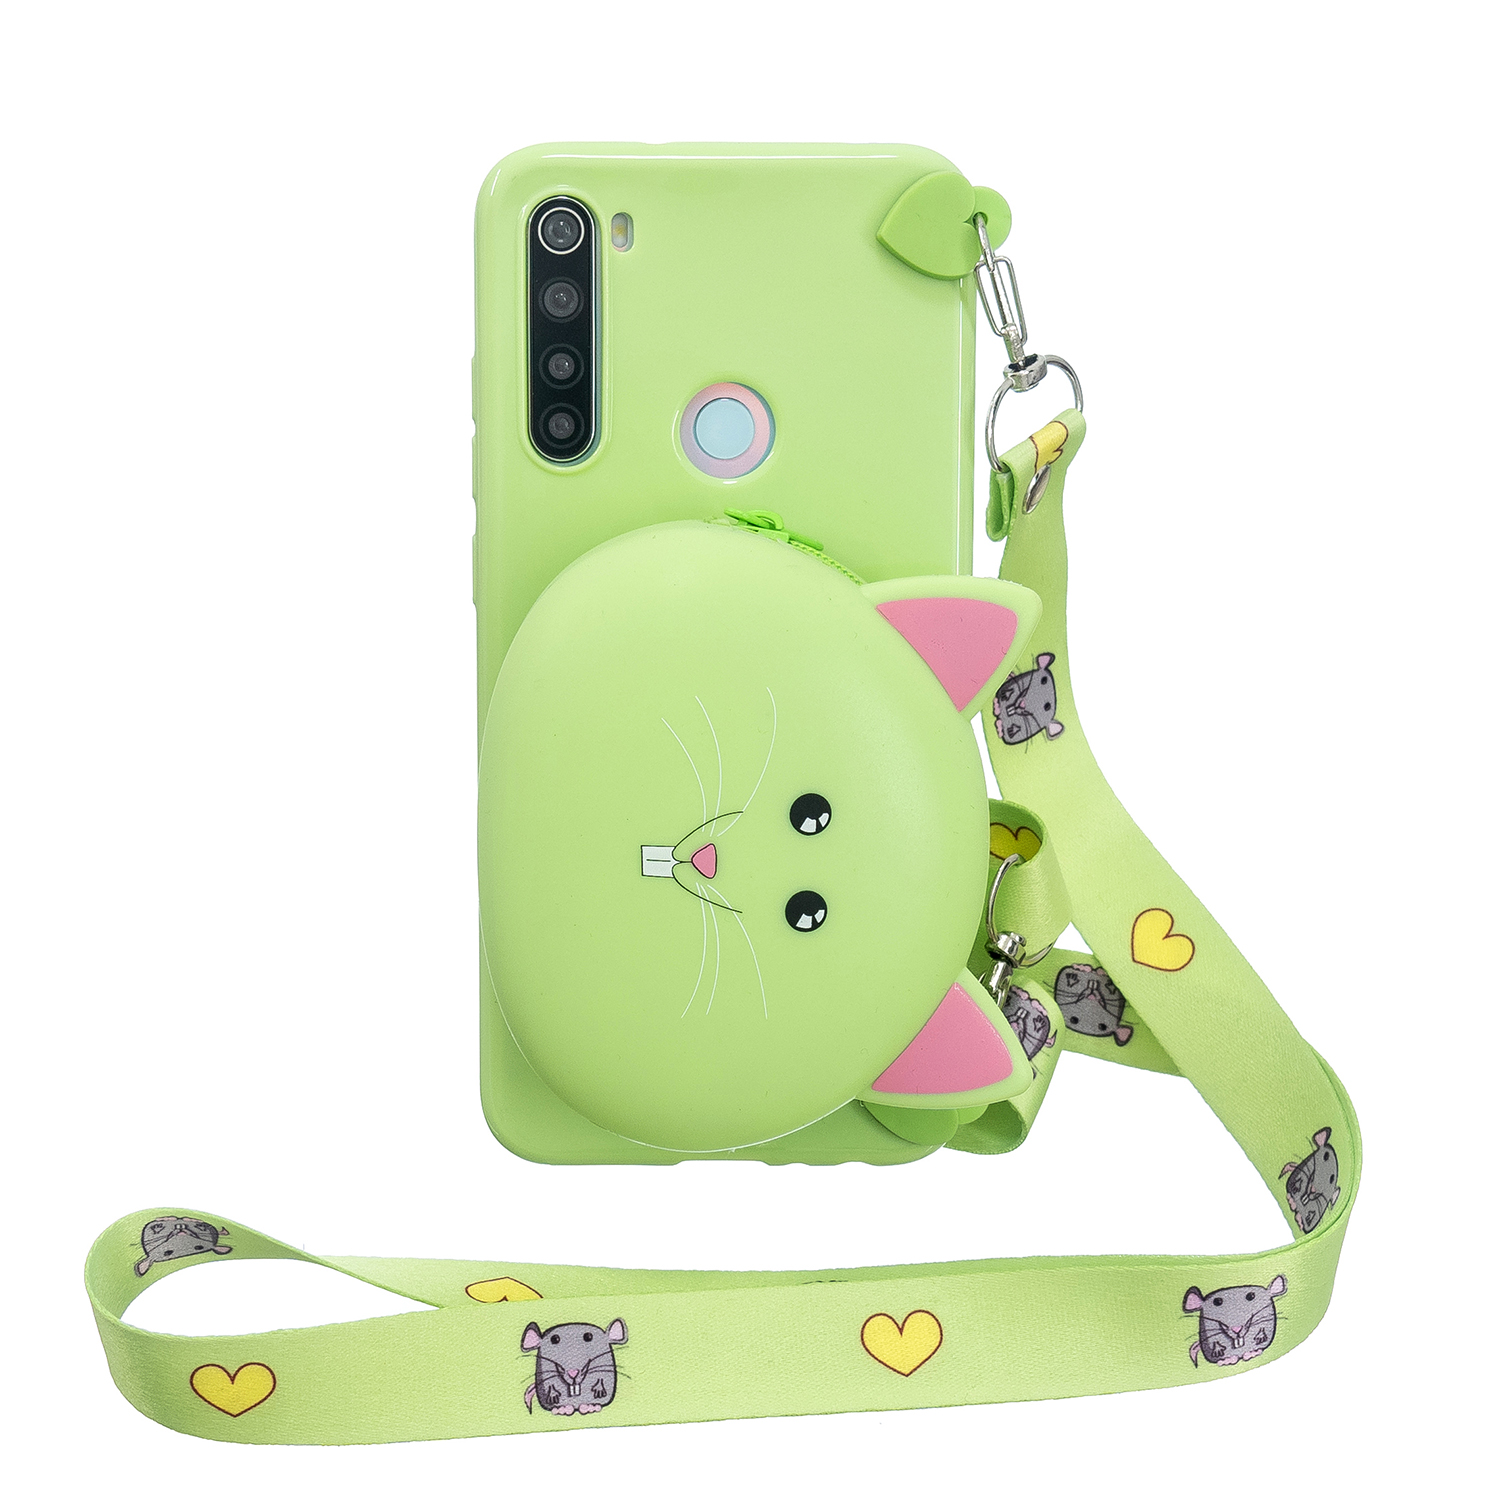 For Redmi Note 8/8T/8 Pro Cellphone Case Mobile Phone Shell Shockproof TPU Cover with Cartoon Cat Pig Panda Coin Purse Lovely Shoulder Starp  Green